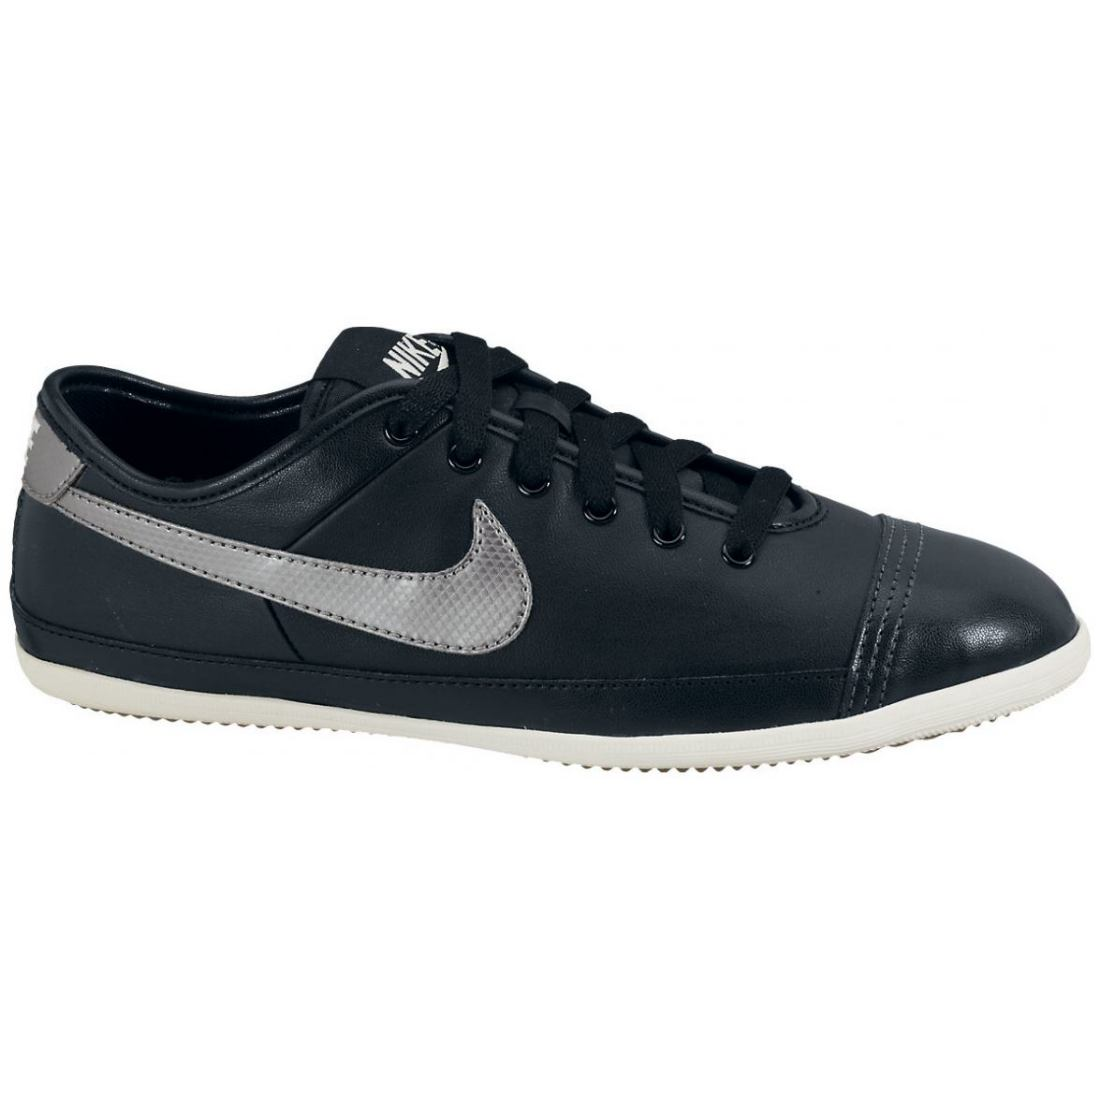 nike flash leather schuhe sneaker damen schwarz ebay. Black Bedroom Furniture Sets. Home Design Ideas